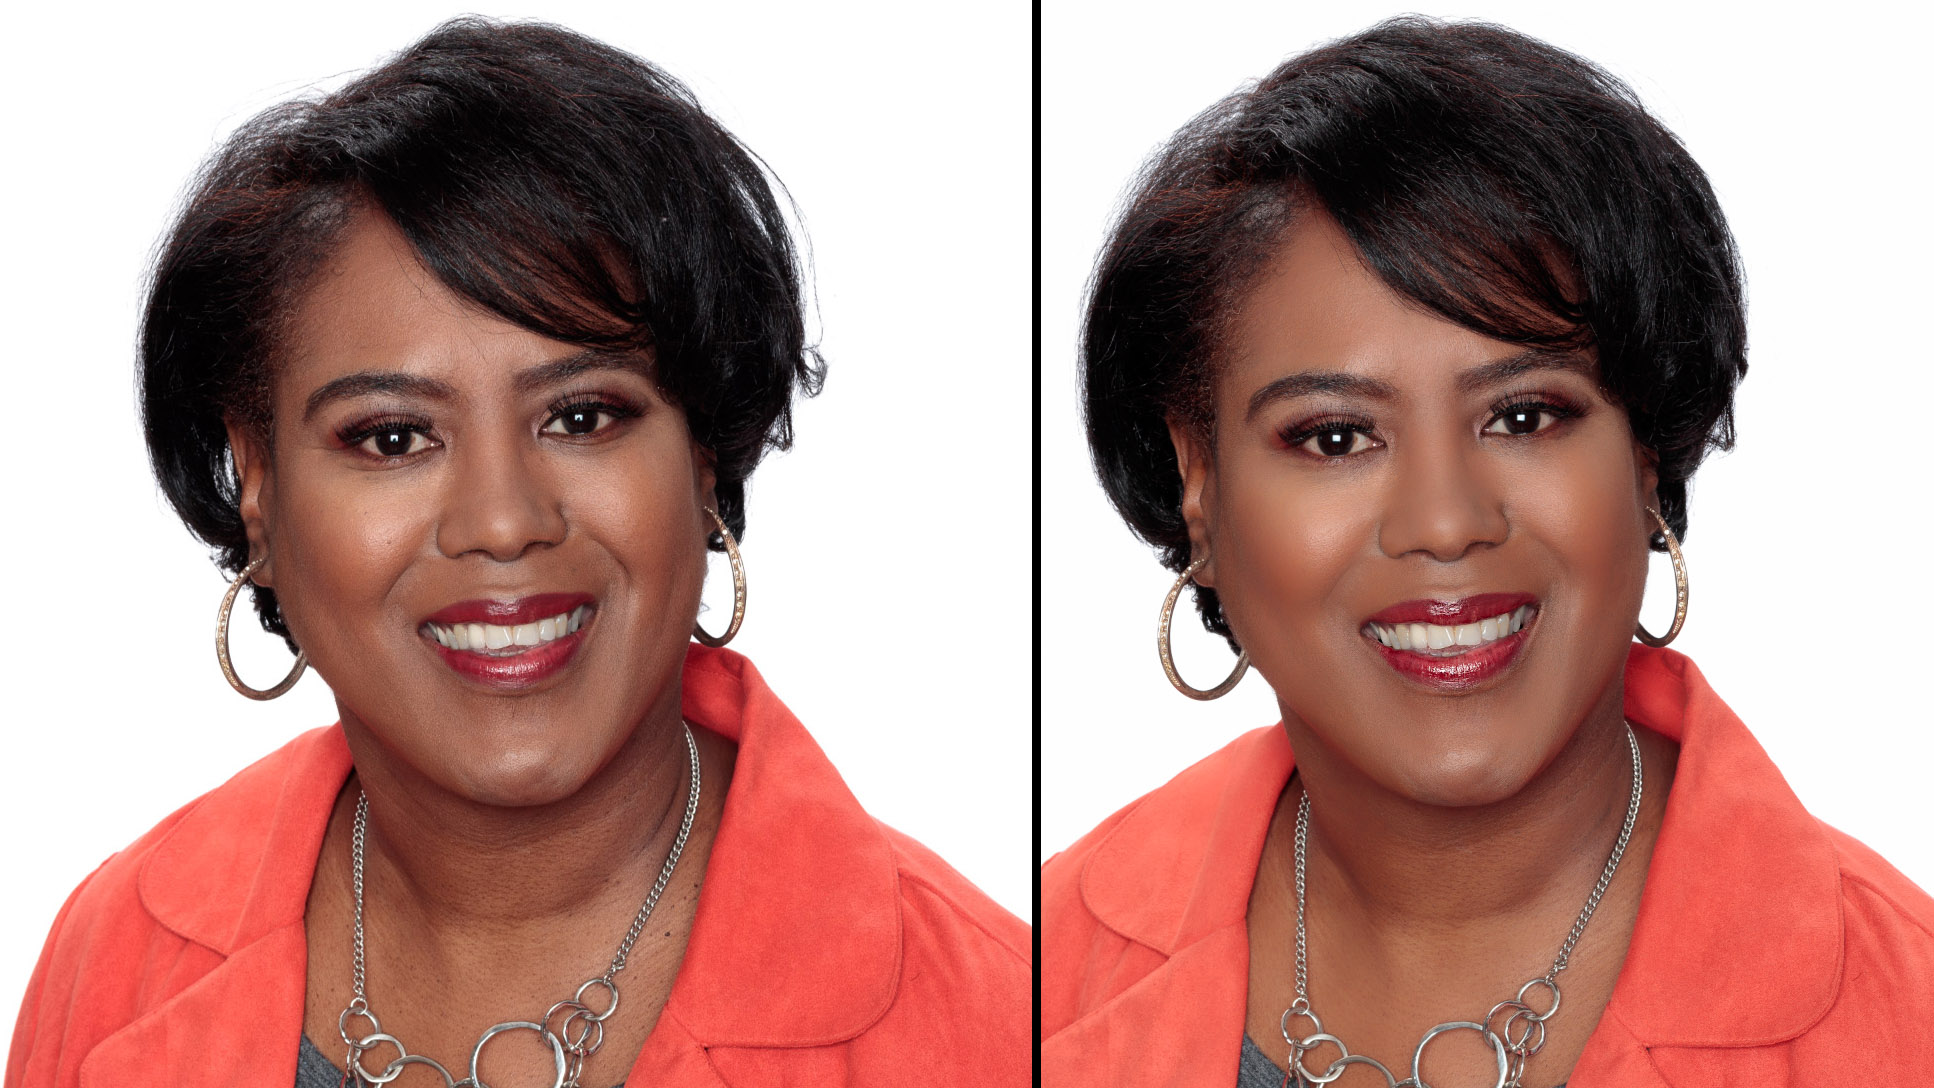 Enhancing Studio Portraits with Perfectly Clear Complete